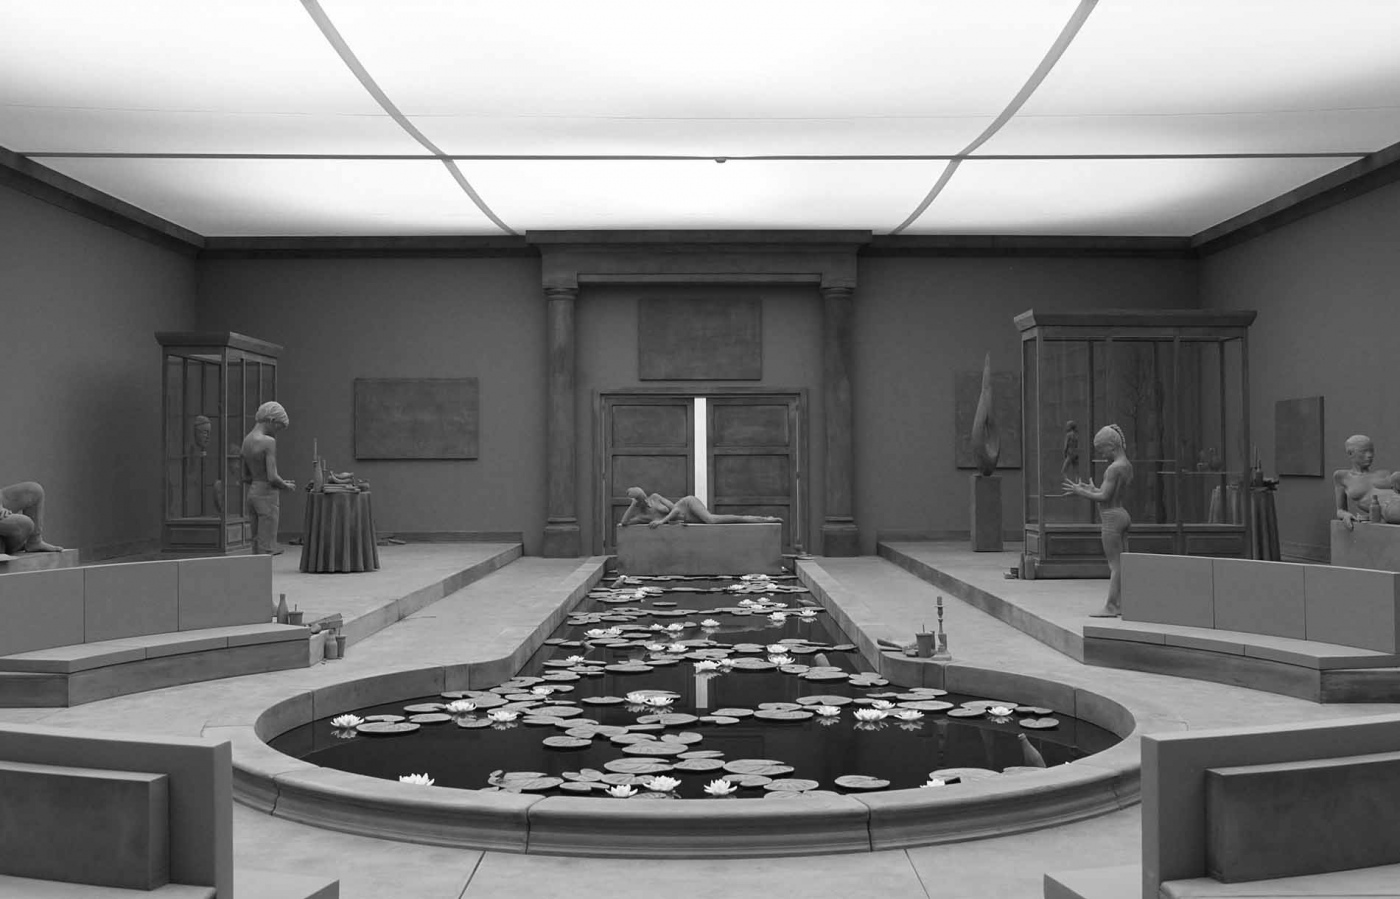 Hans Op de Beeck: THE COLLECTOR'S HOUSE, 2016. Rauminstallation (verschiedene Materialien), 20 x 12,5 x 4 m. © Hans Op de Beeck